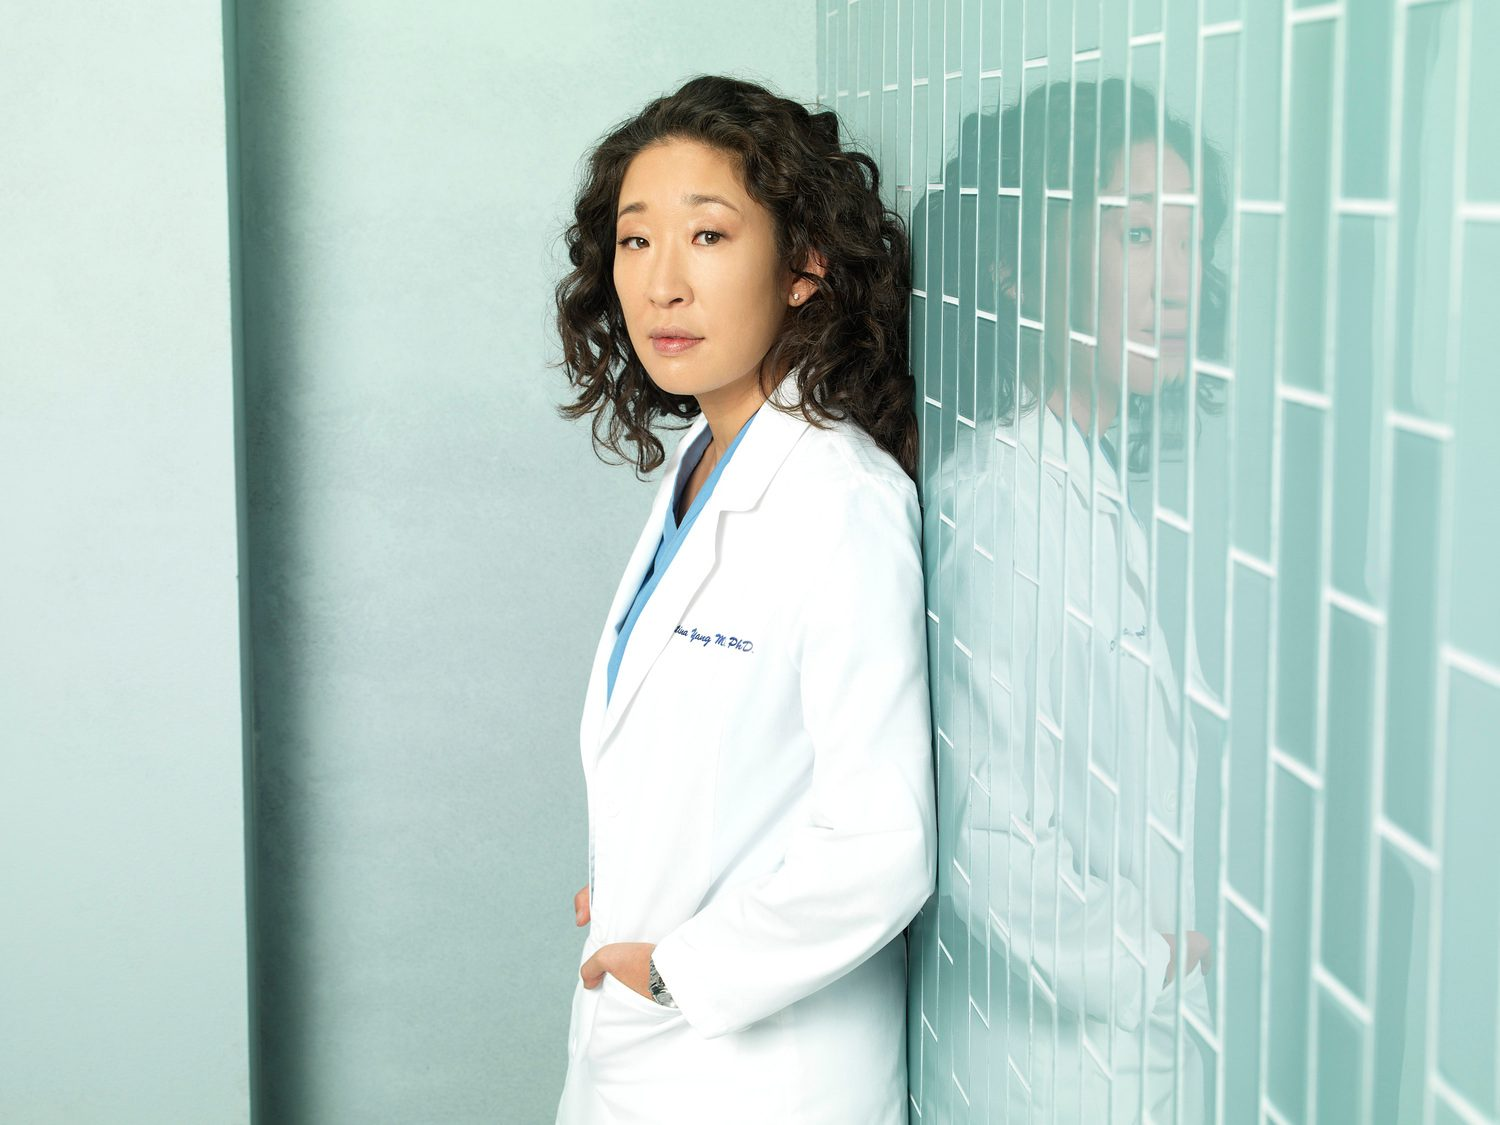 Grey's Anatomy Quotes - Cristina Yang